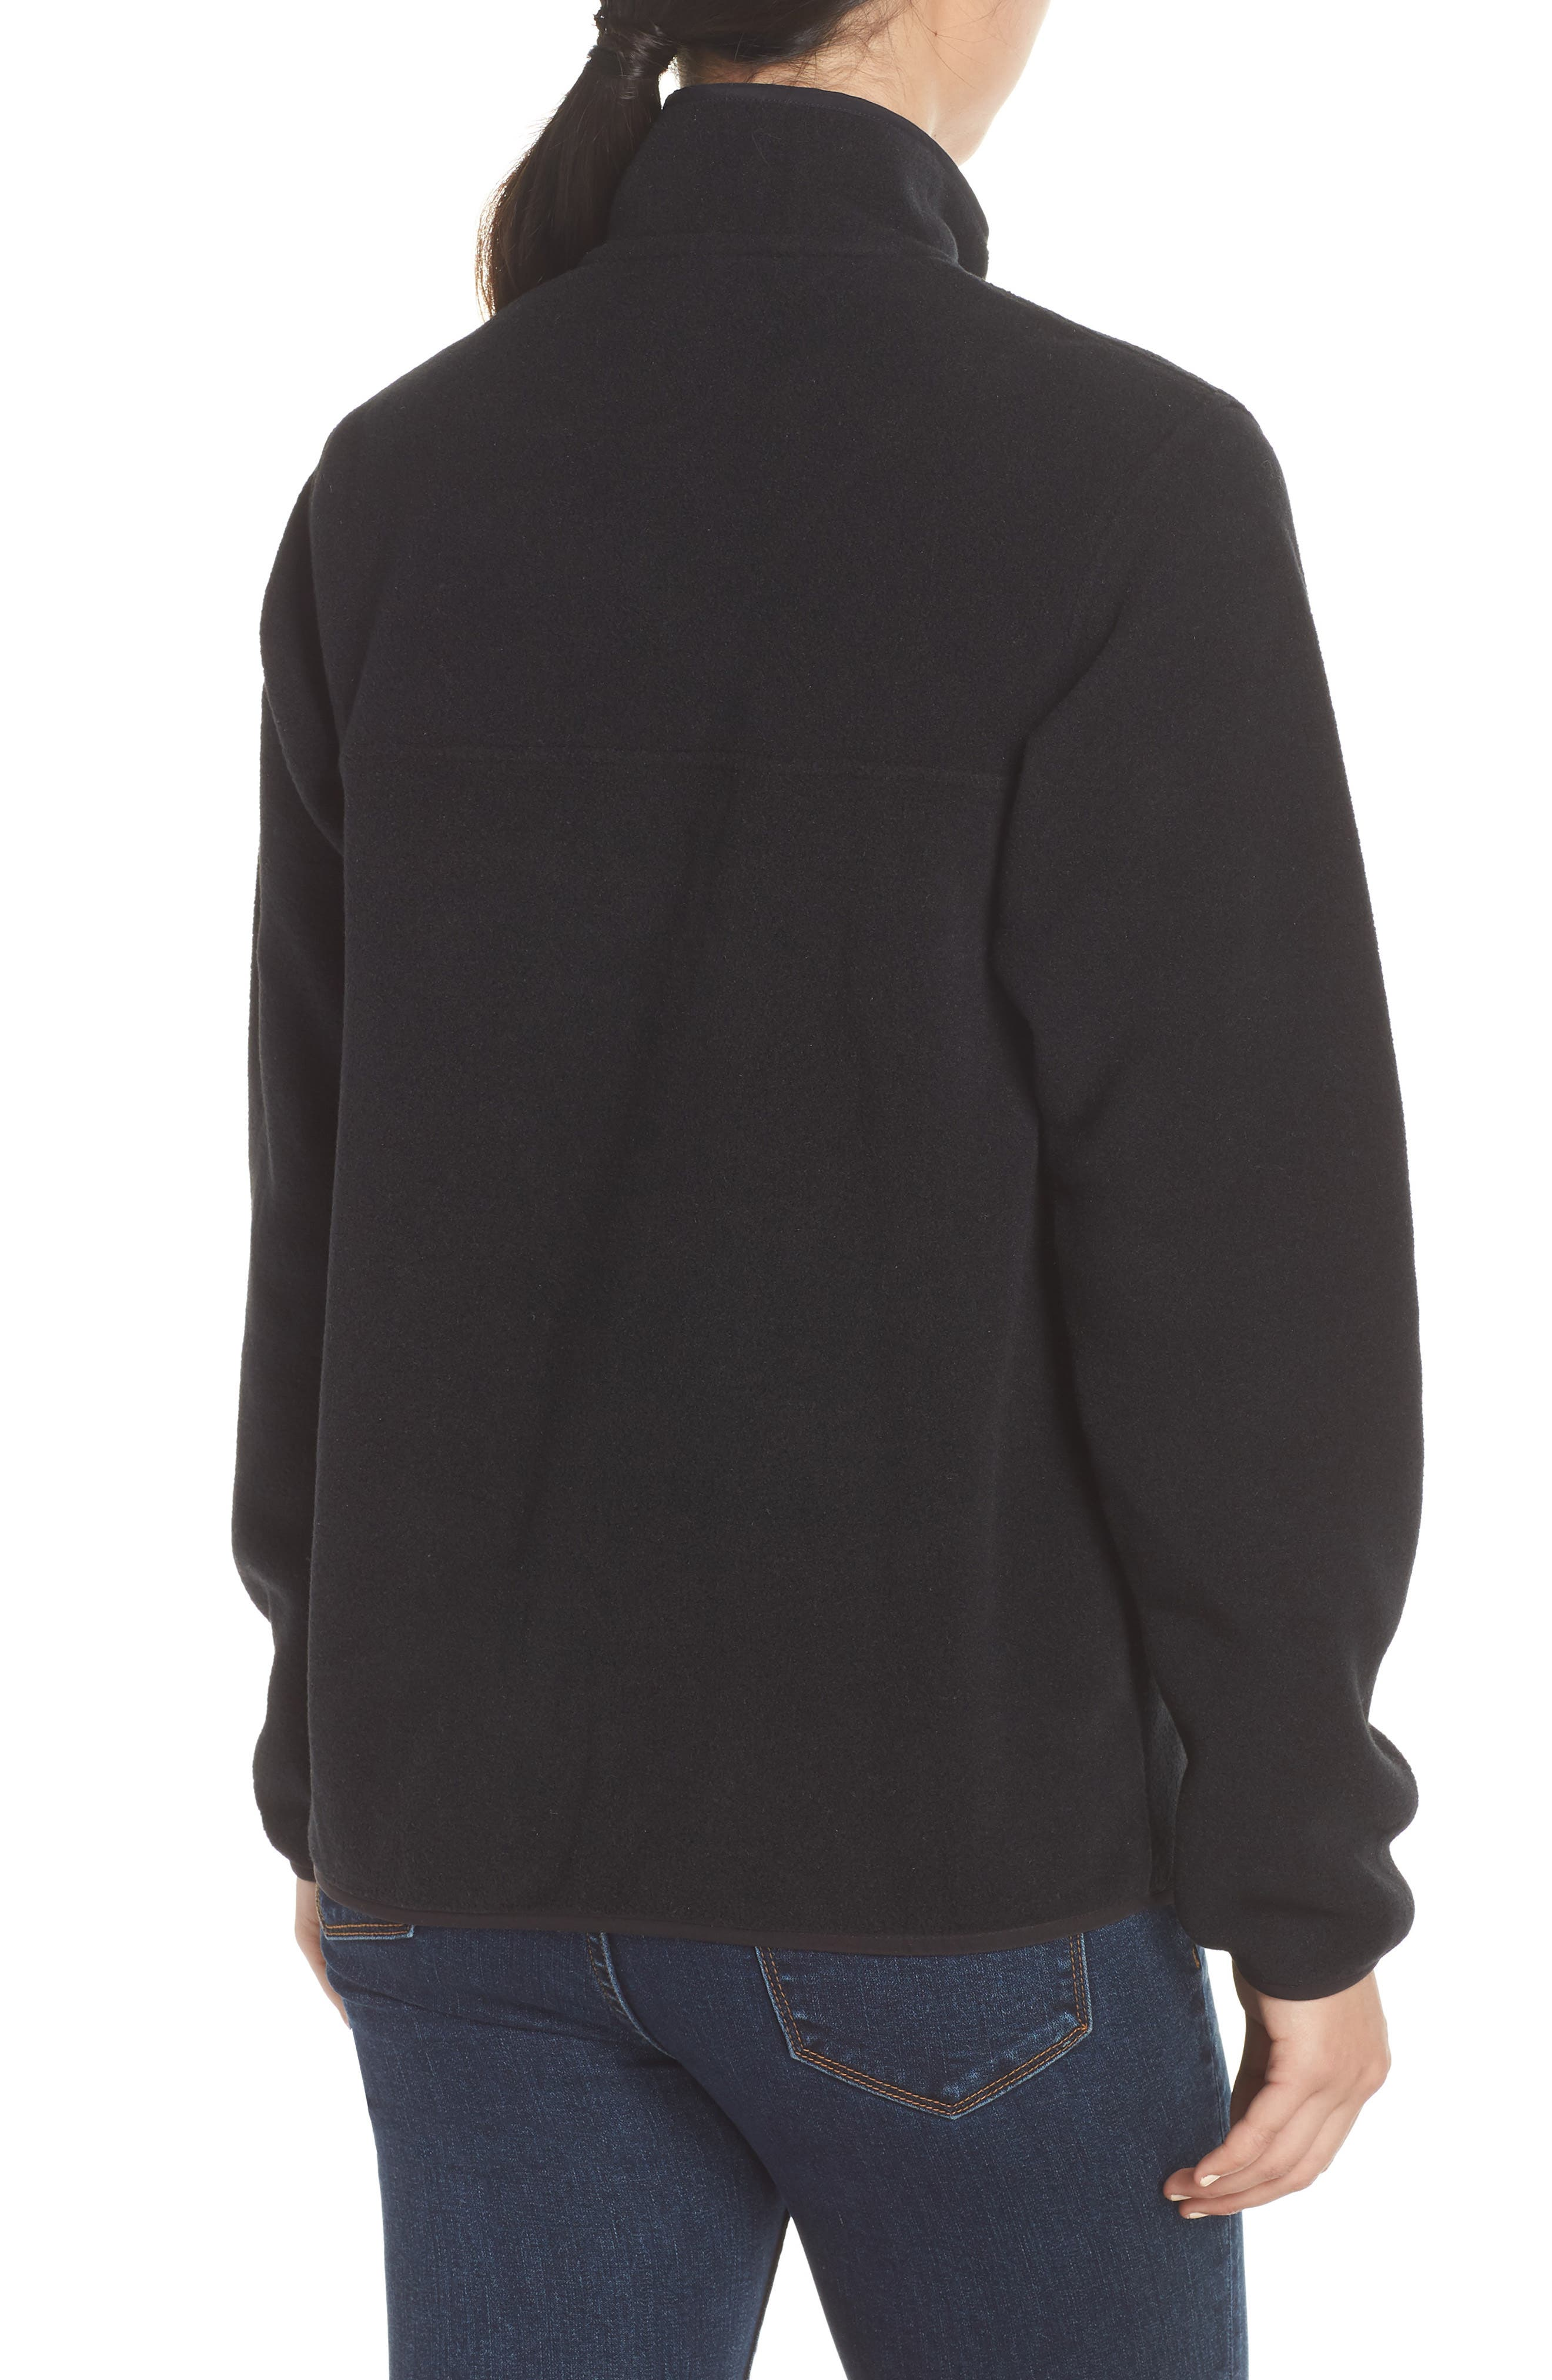 PATAGONIA,                             Synchilla Snap-T<sup>®</sup> Fleece Pullover,                             Alternate thumbnail 2, color,                             BLACK W/ BLACK